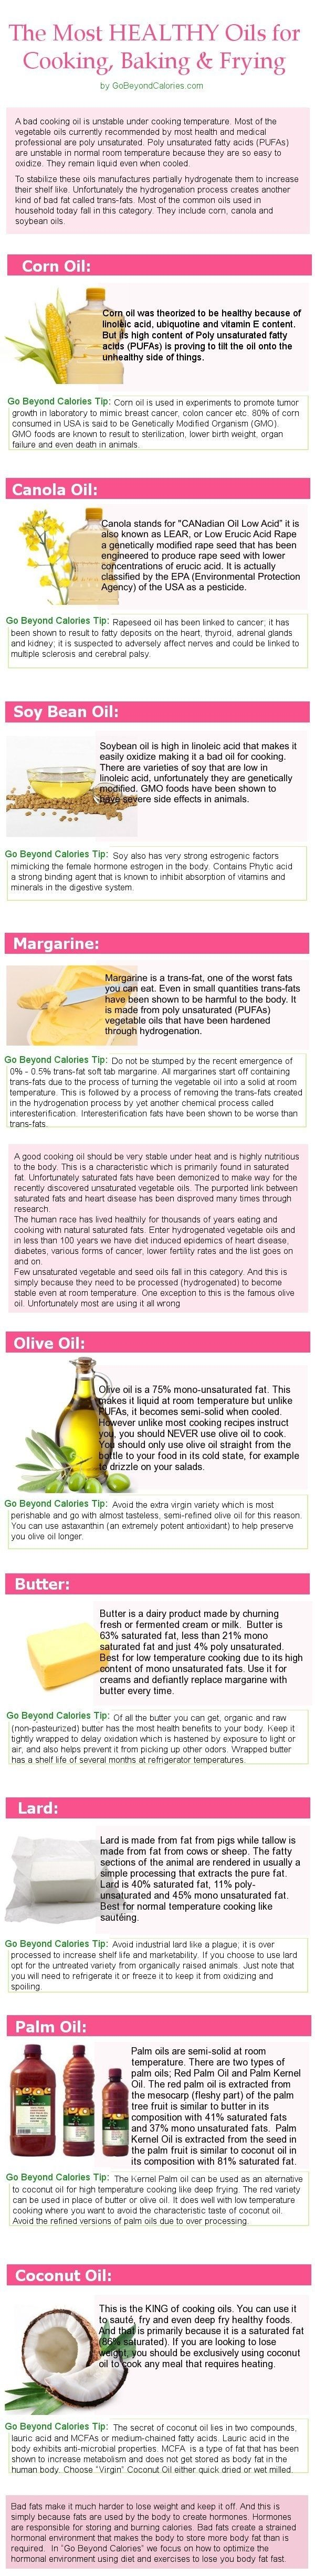 The most healthy oils for cooking baking healthy food healthy living healthy food facts cooking